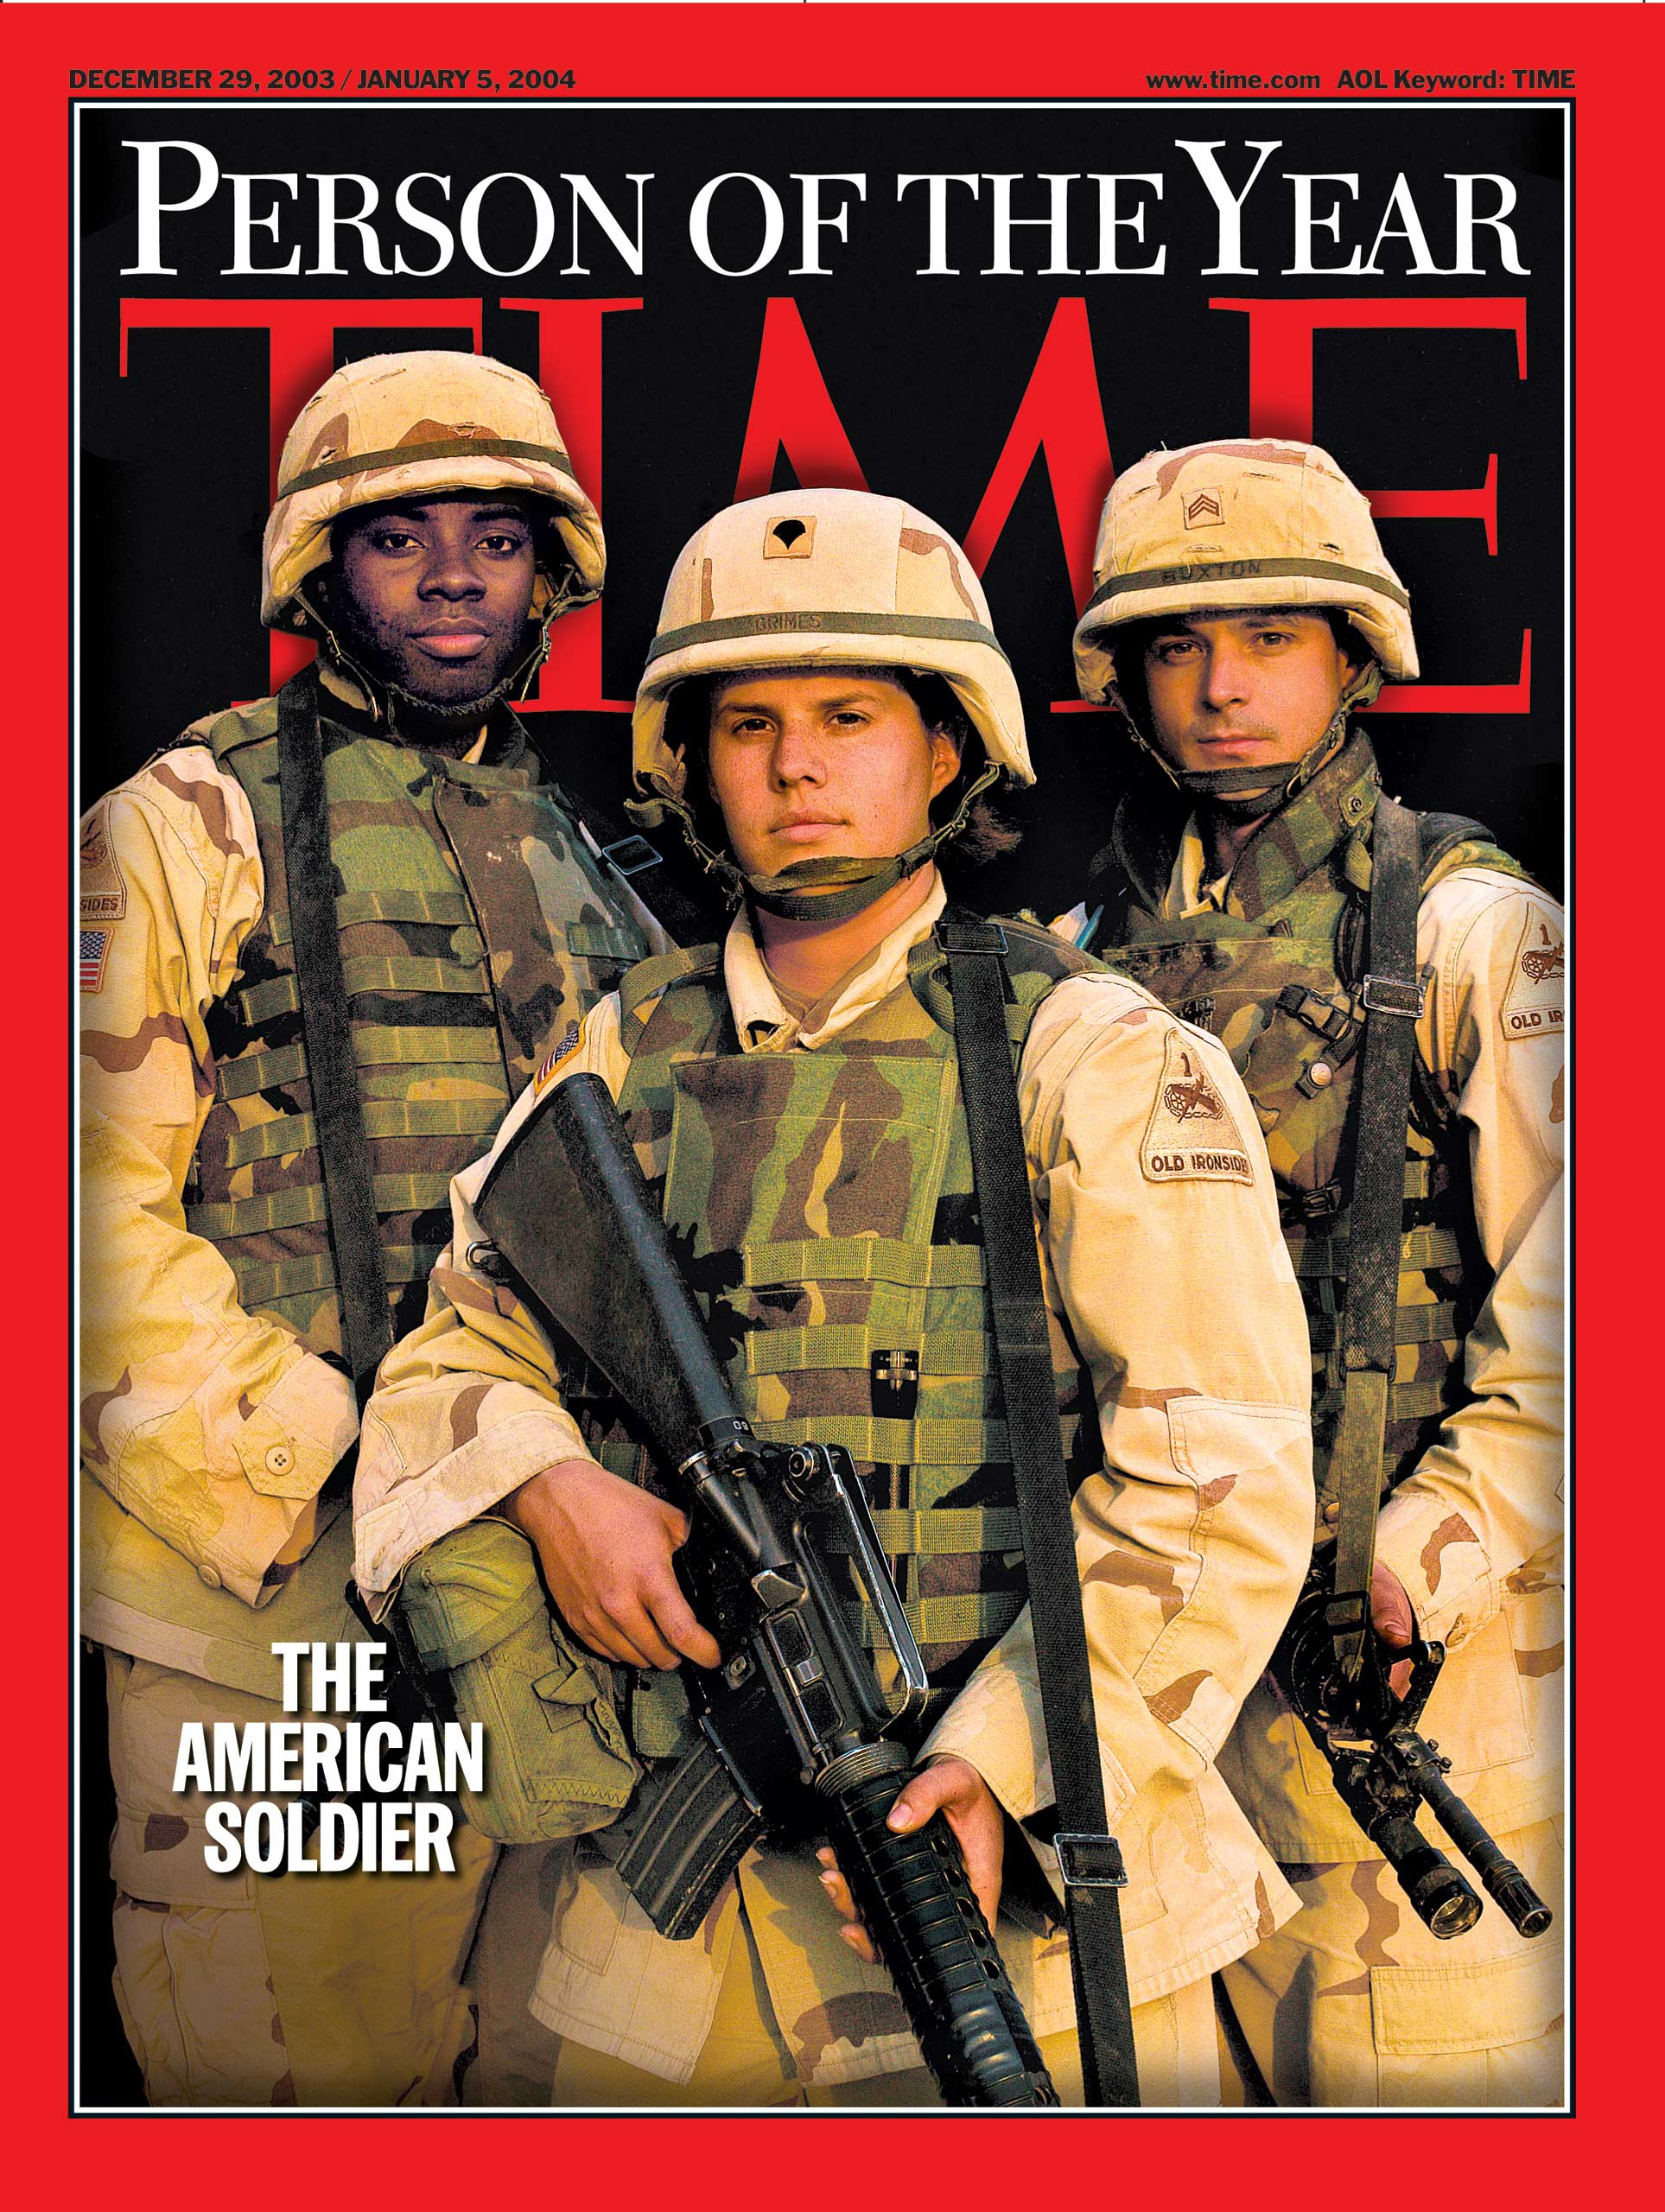 2003: The American Soldier